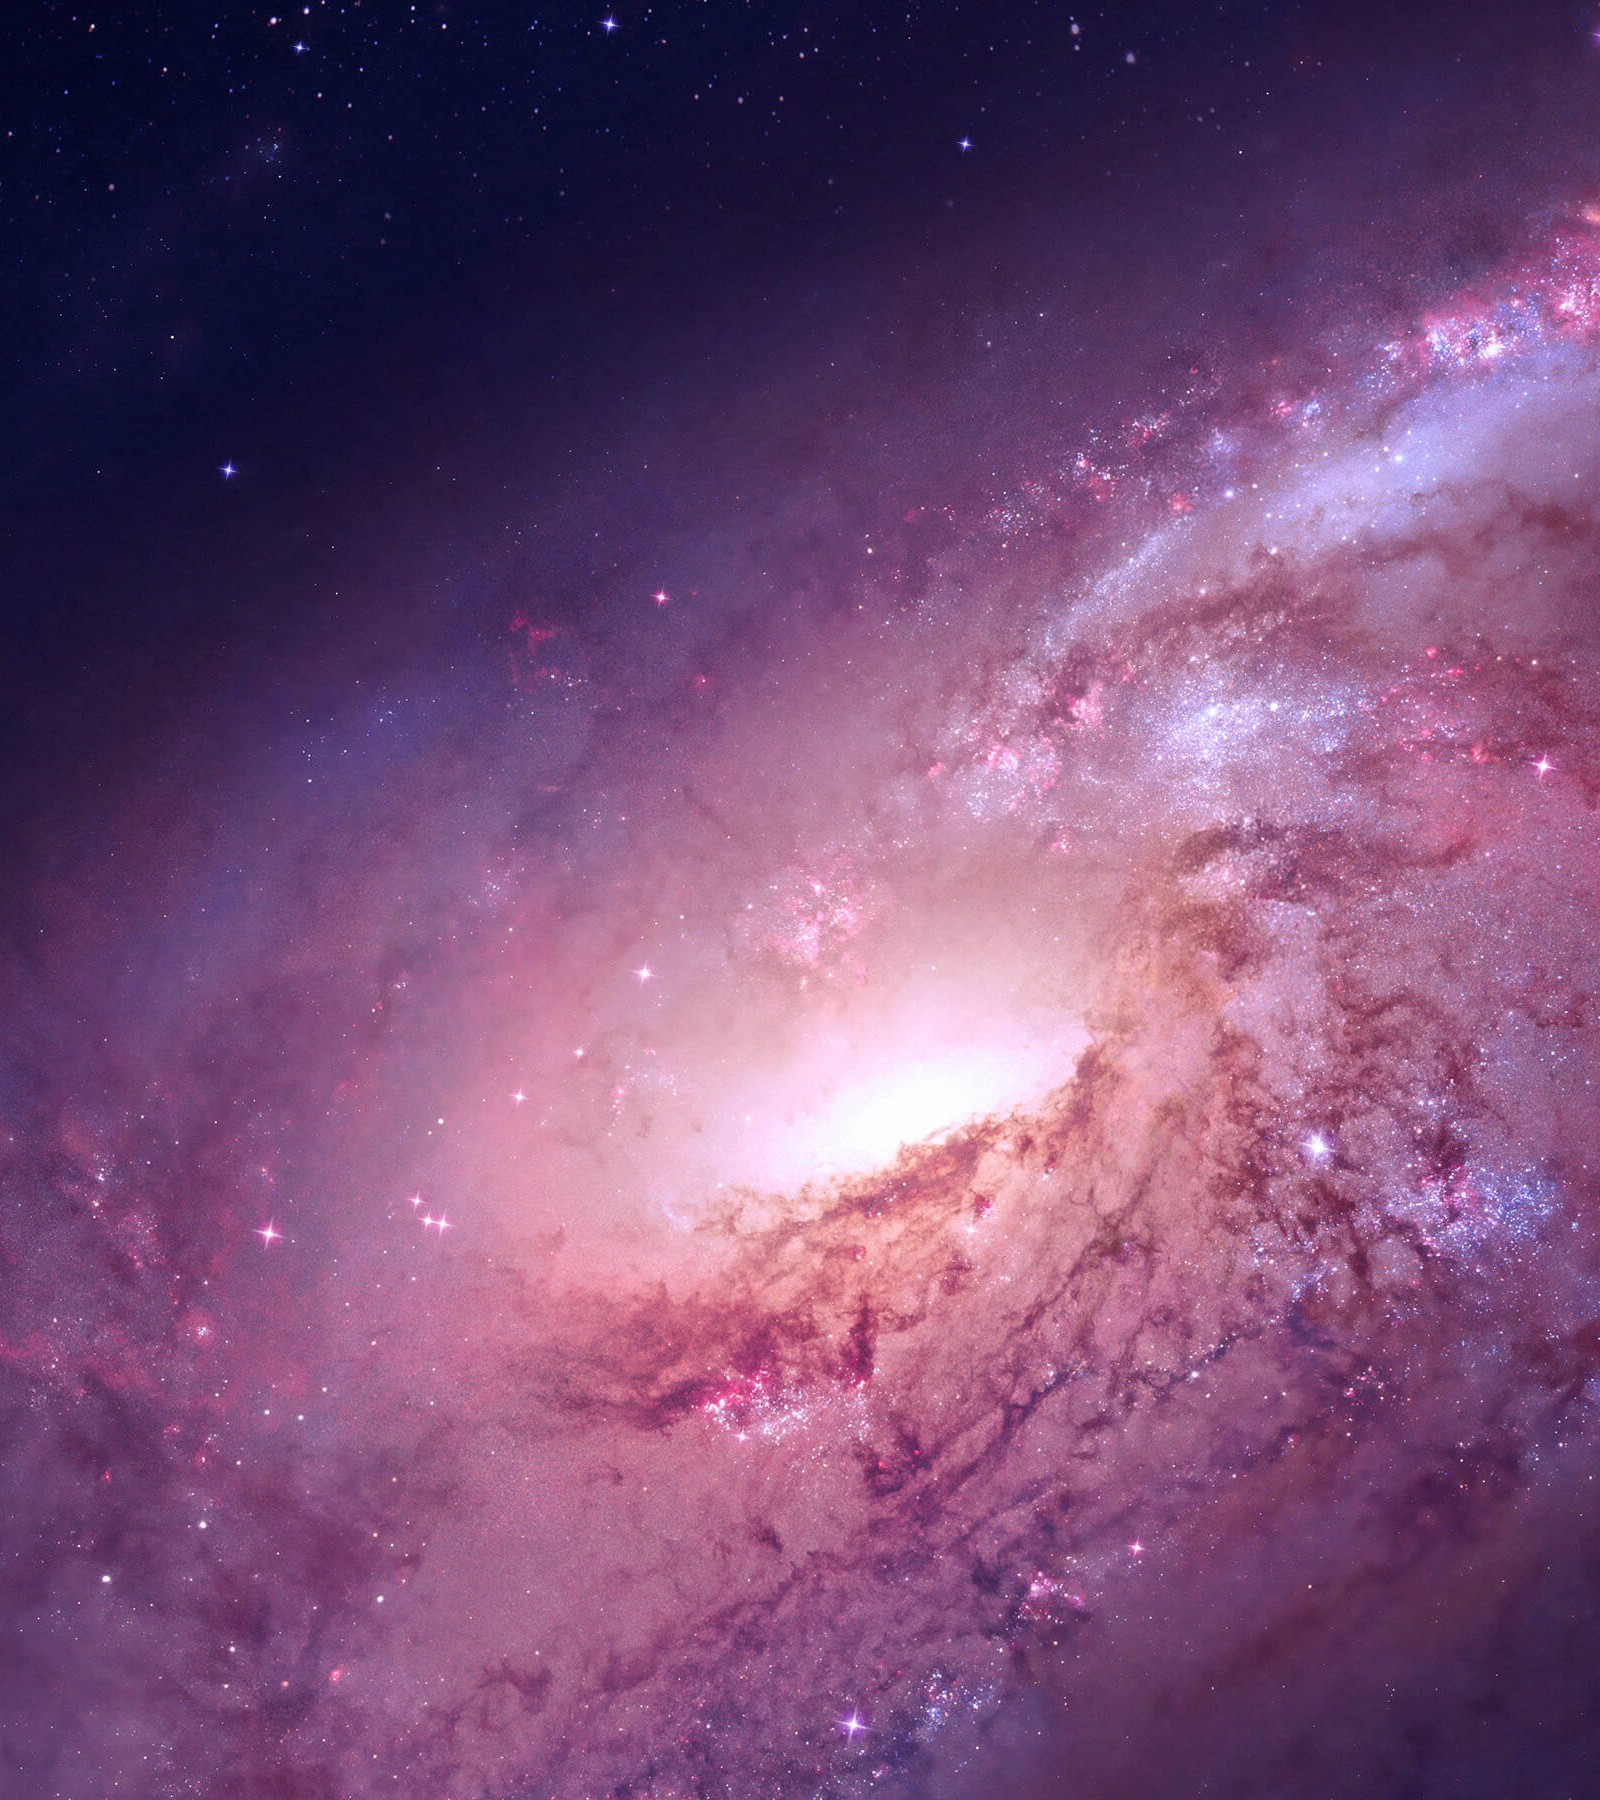 Galaxy M106 HD wallpaper for Kindle Fire HDX 89   HDwallpapersnet 1600x1800